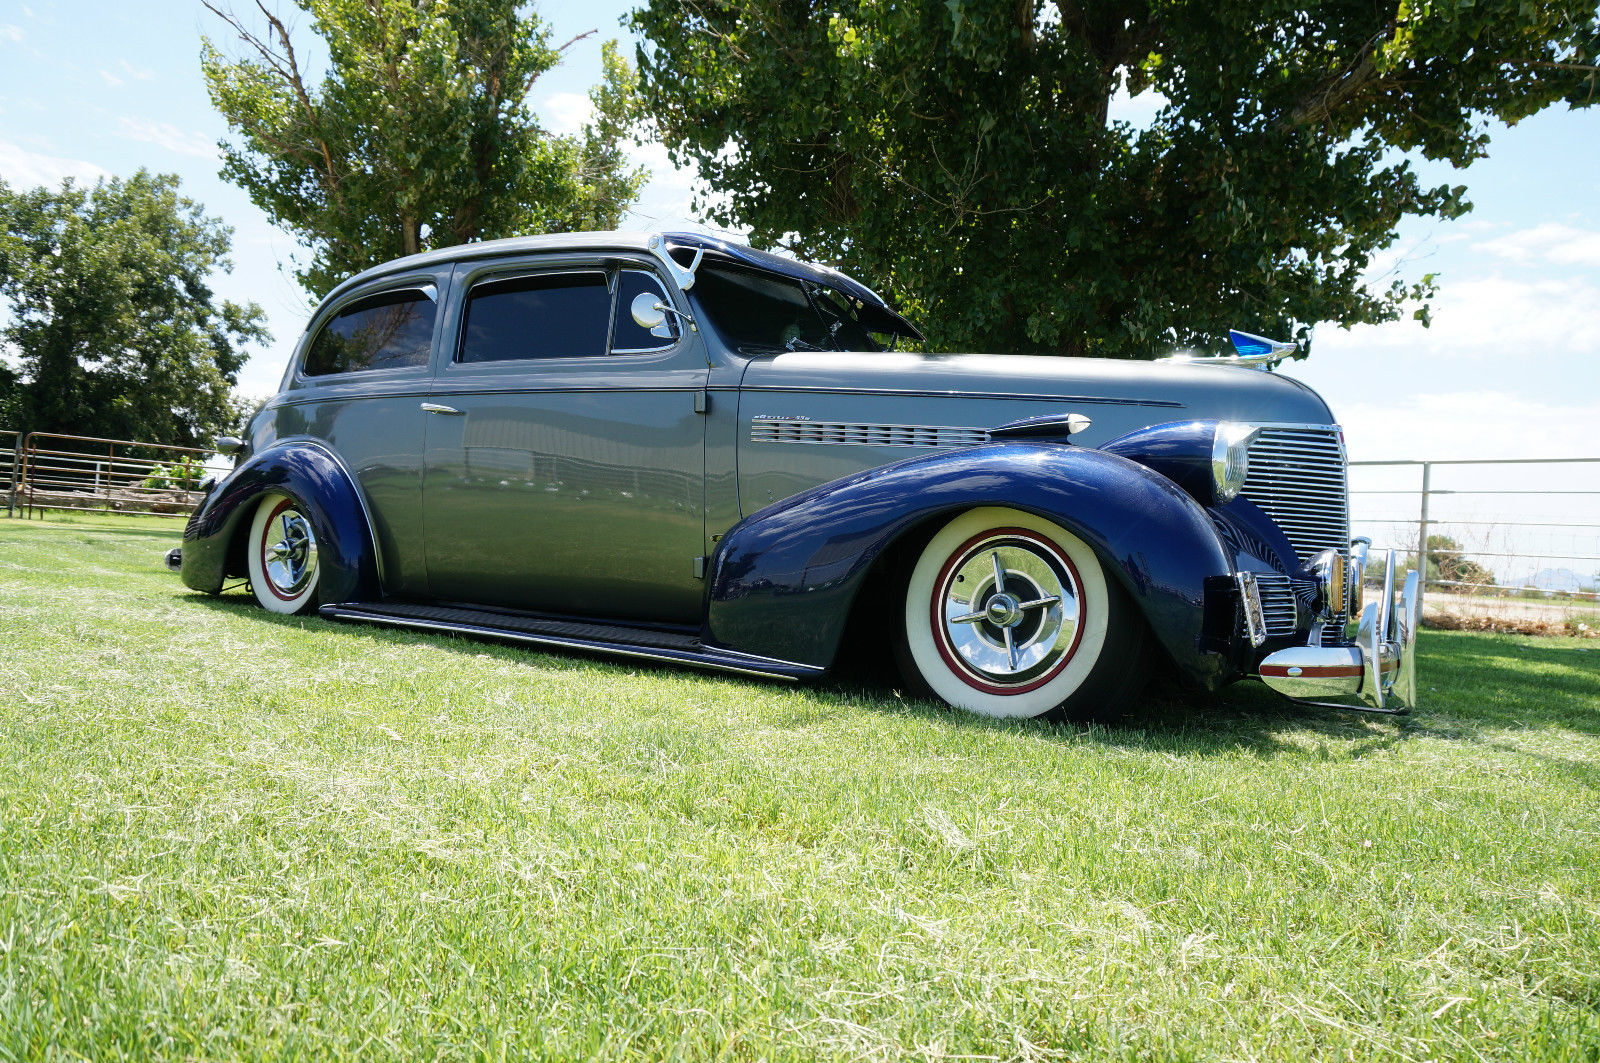 1939 chevy master deluxe 2 door sedan kustom bomb low rider. Black Bedroom Furniture Sets. Home Design Ideas